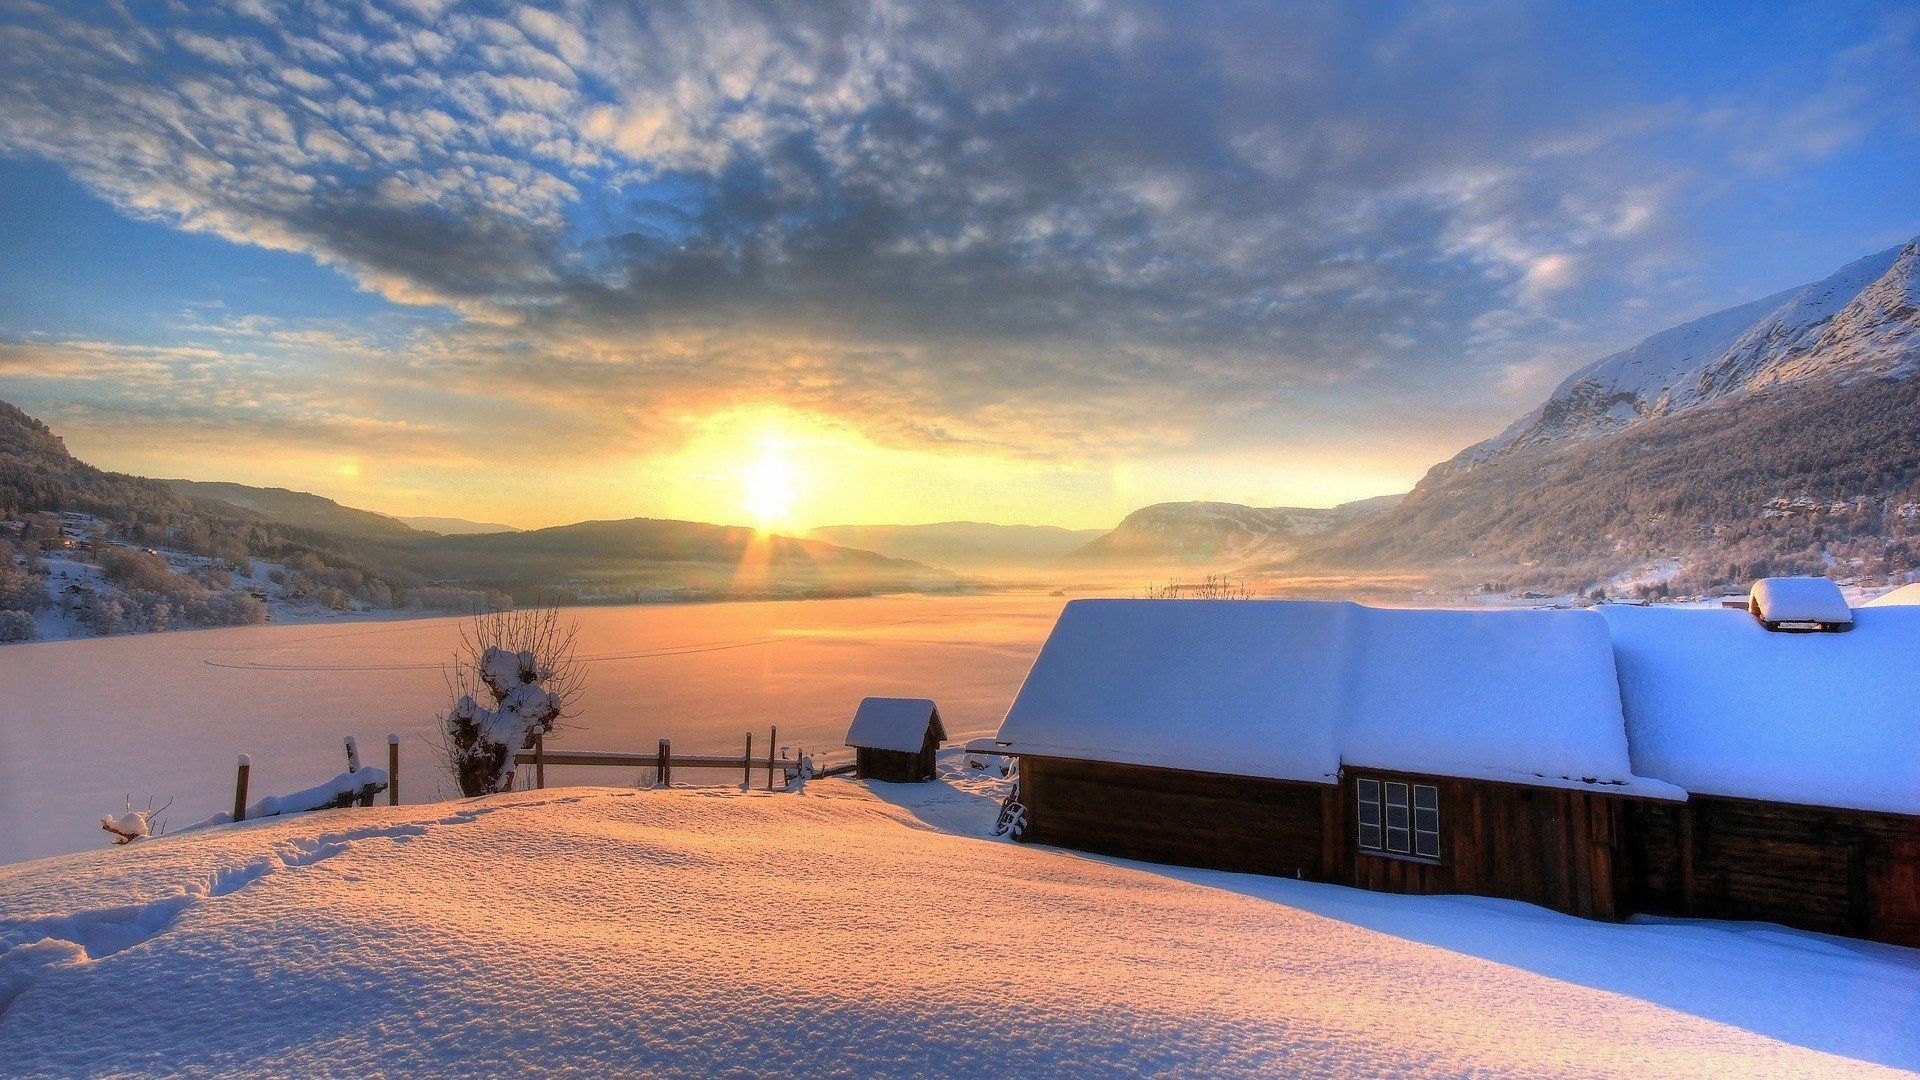 Hd Lock Screen Wallpaper Android Winter Screen Wallpapers Group 83